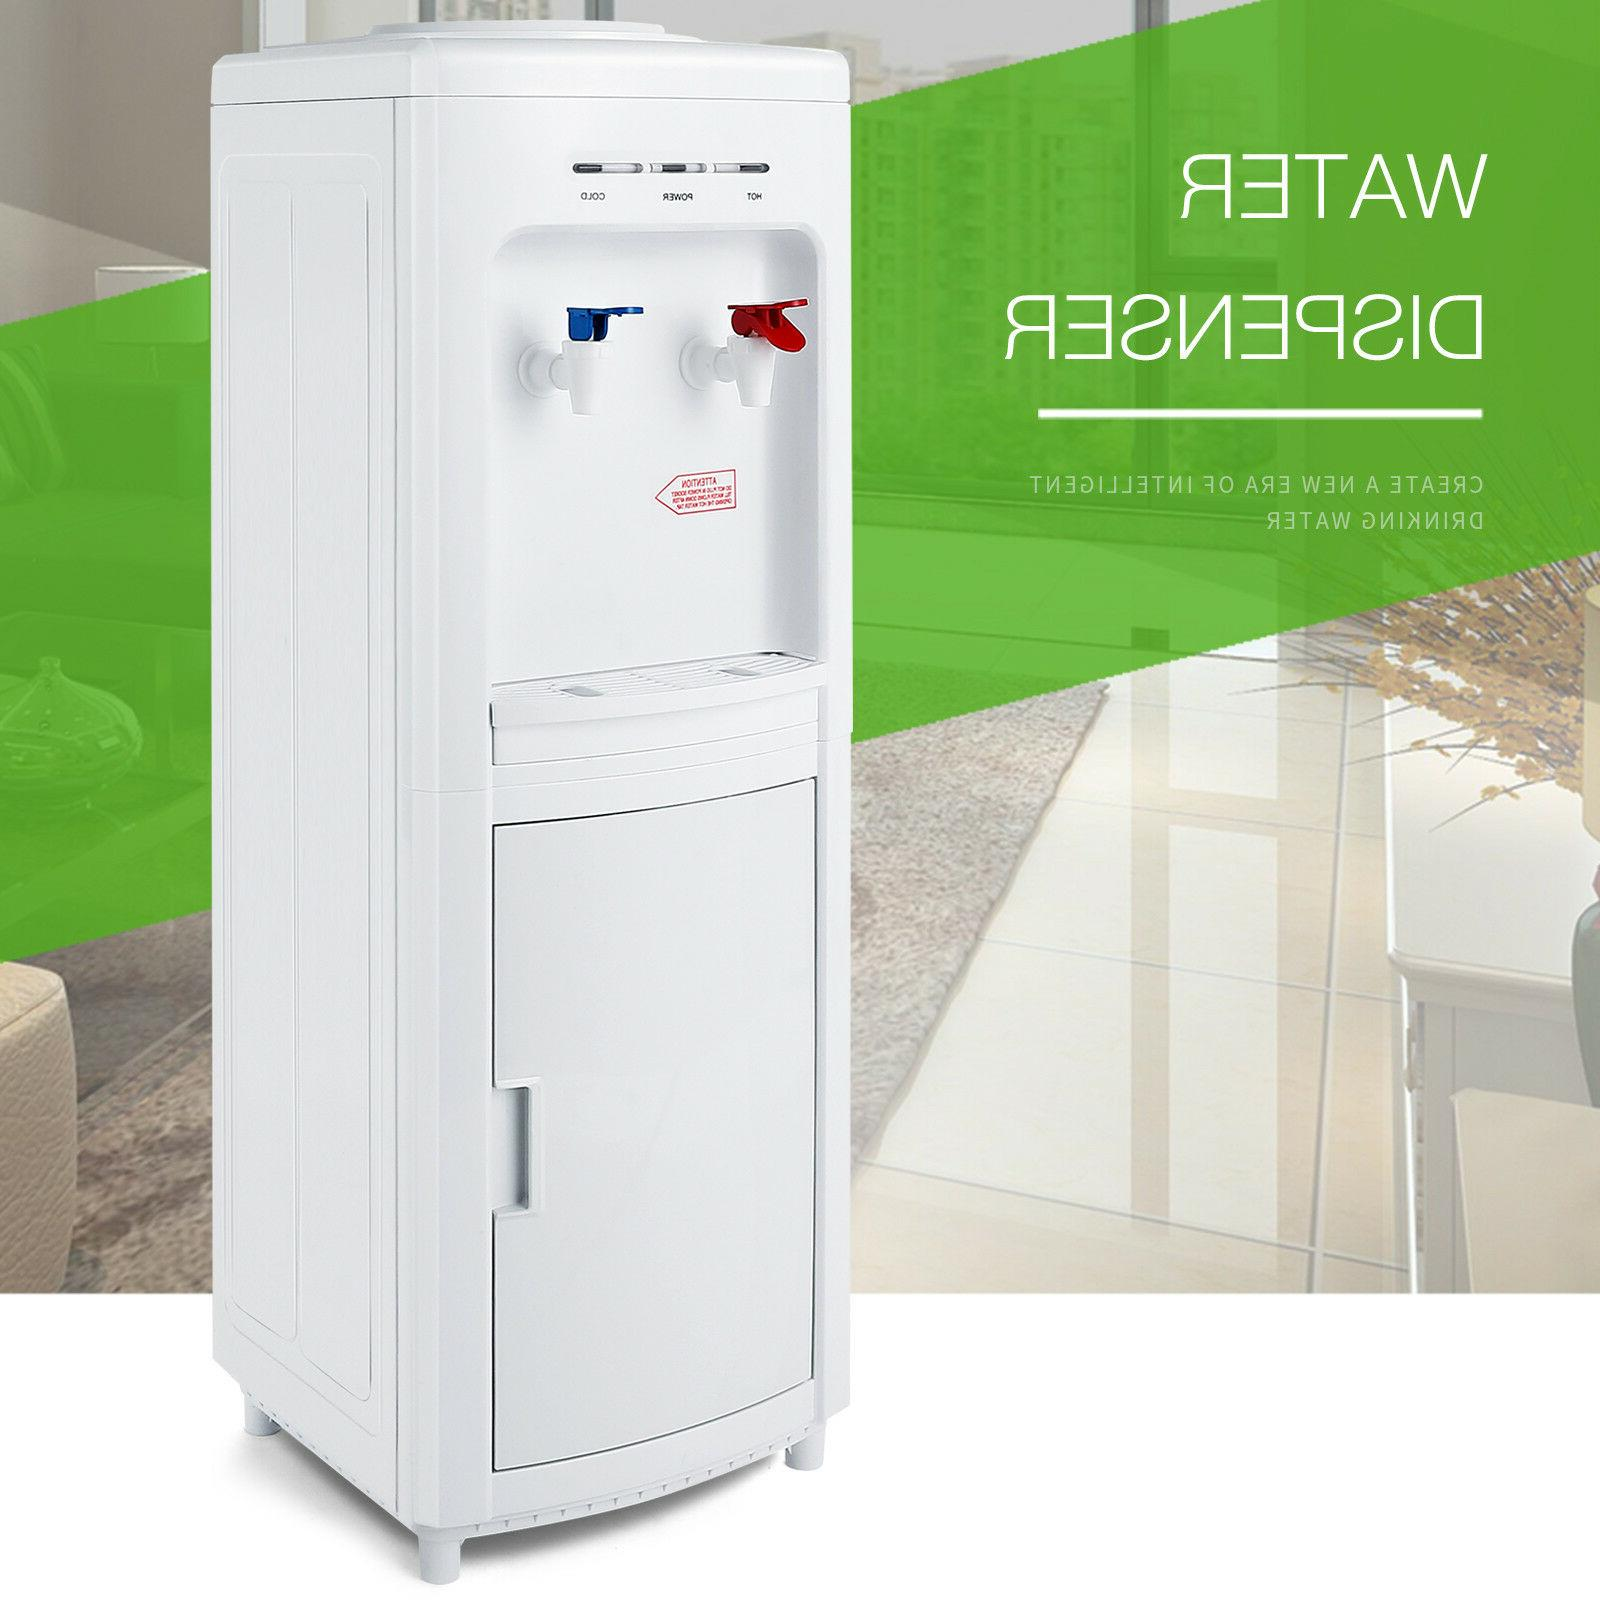 electric water dispenser hot cold 5 gallon